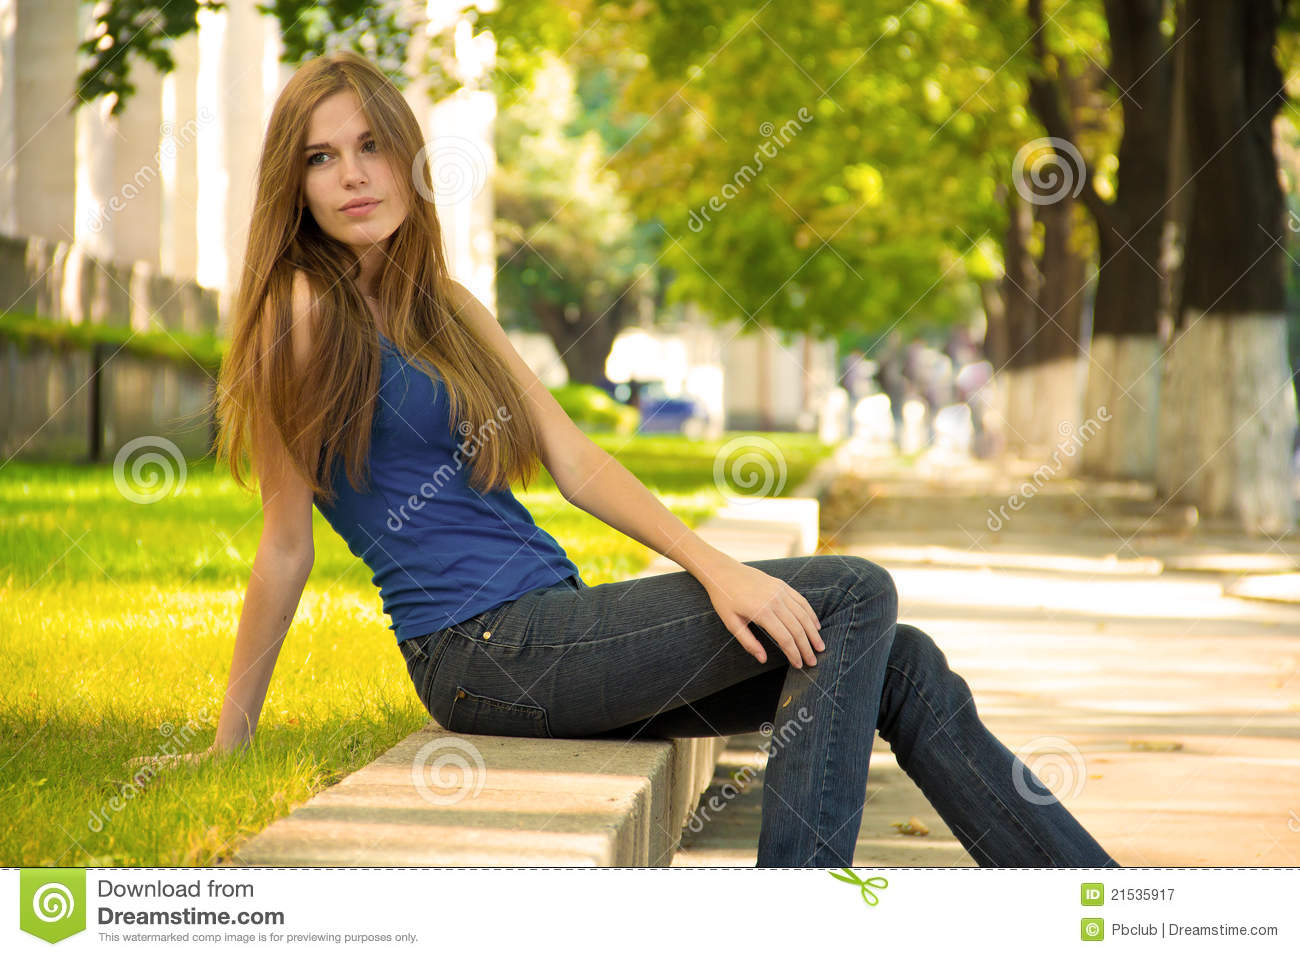 green park single christian girls Dating website for green park market 100% free find singles from green park market and enjoy with them - mate4allcom.